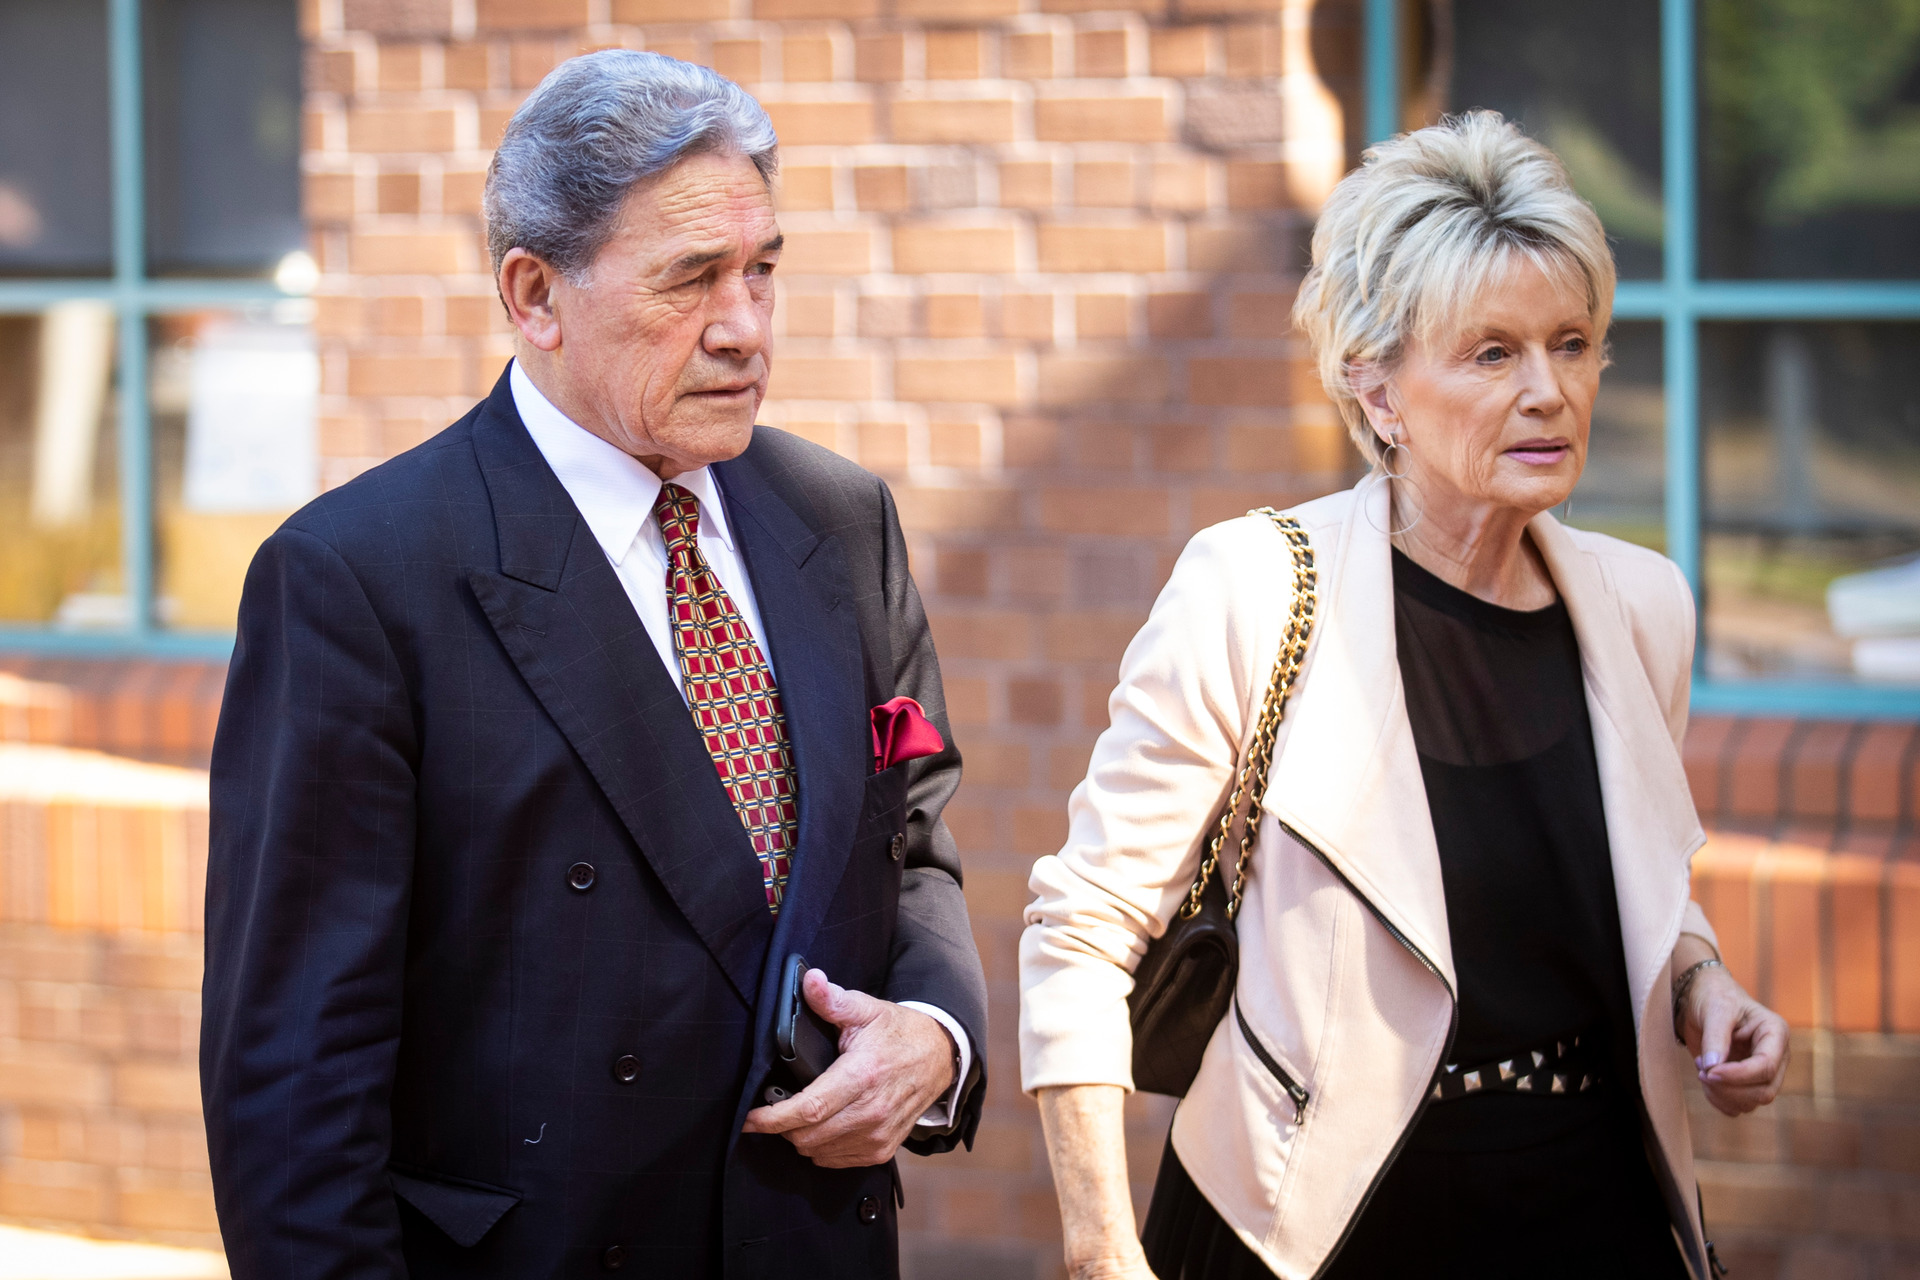 Upholding Winston Peters' complaints would be 'catastrophic' - lawyer